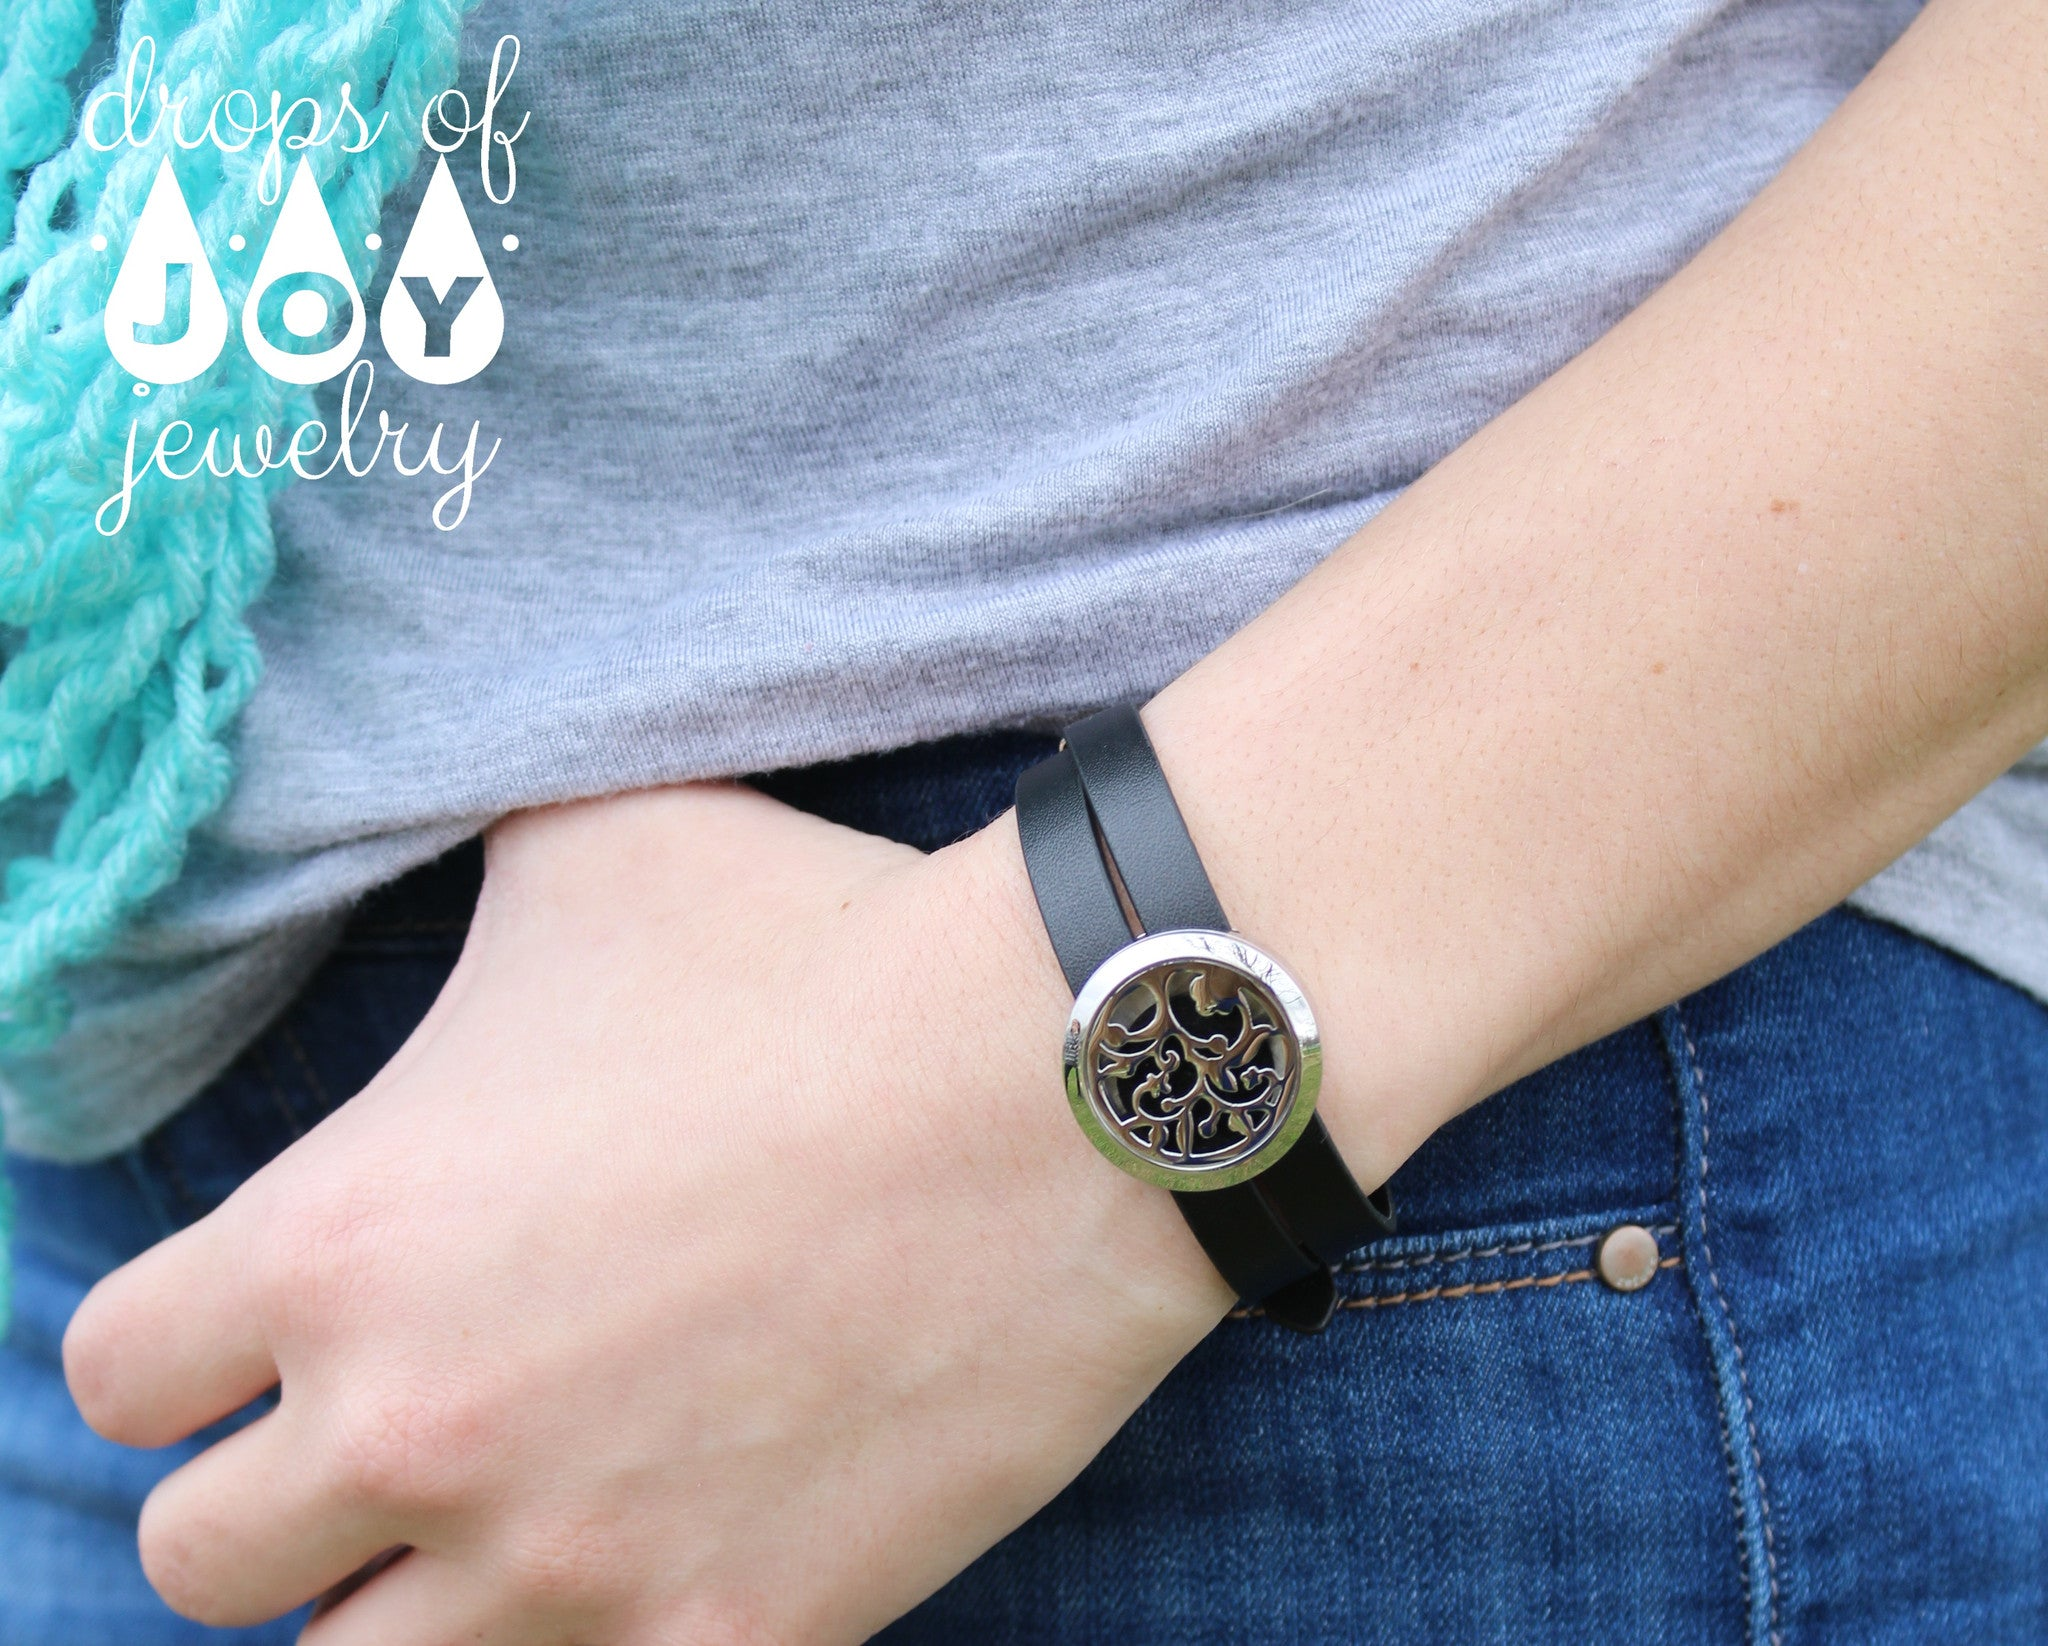 Leather Wrap Diffuser Bracelet - Black - Drops of Joy Jewelry - 2